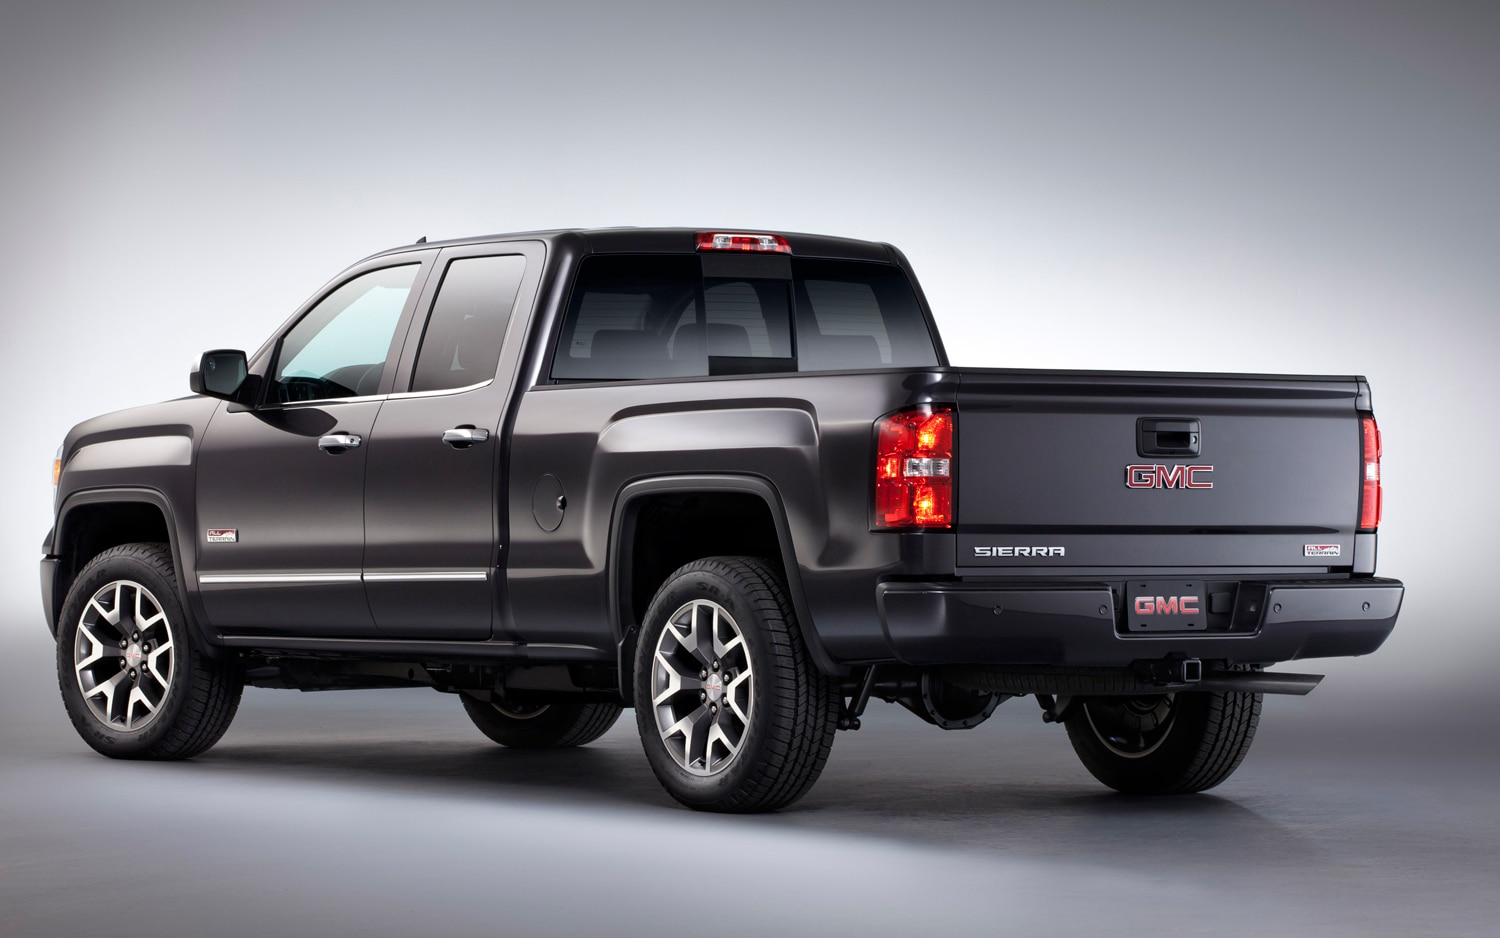 2014 GMC Sierra Rear View